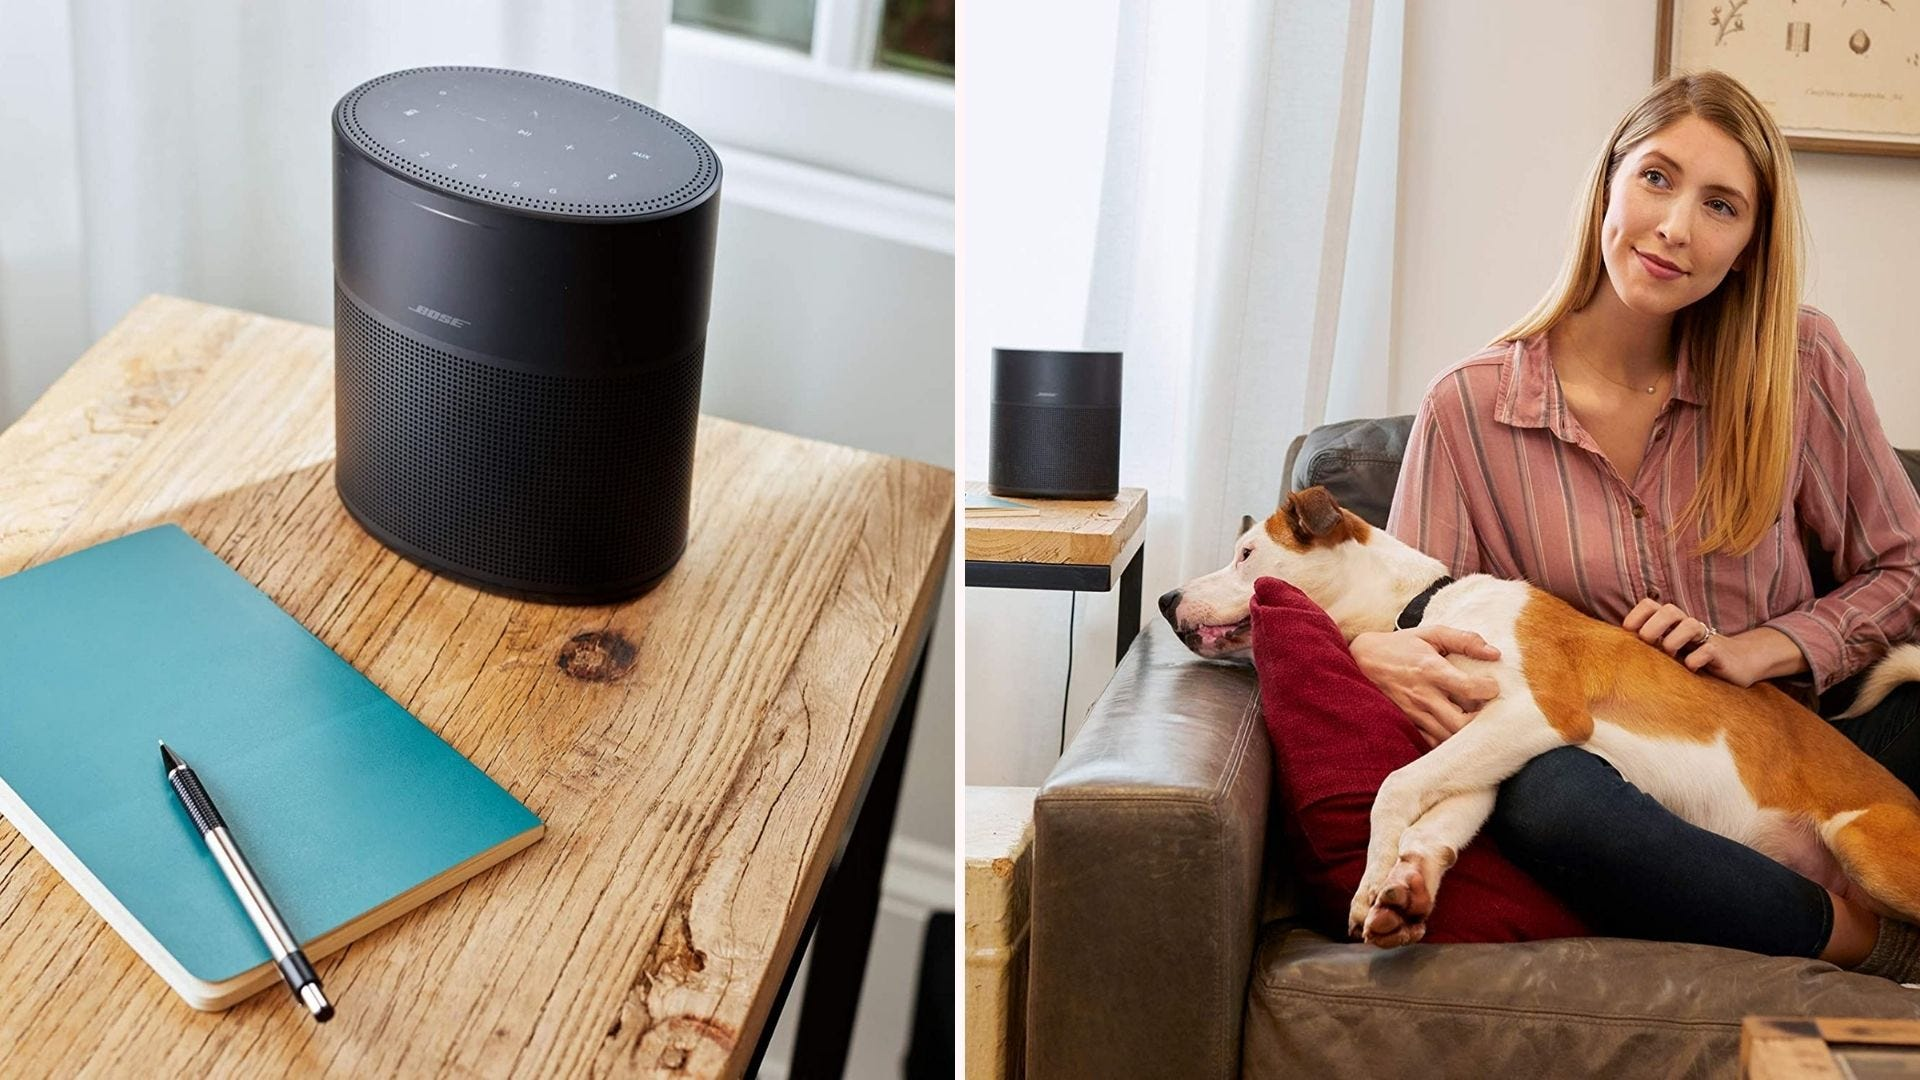 On the left, a four-inch long speaker sits on a table in a house. On the right, a woman and her dog sit on the couch while the speaker plays music nearby.